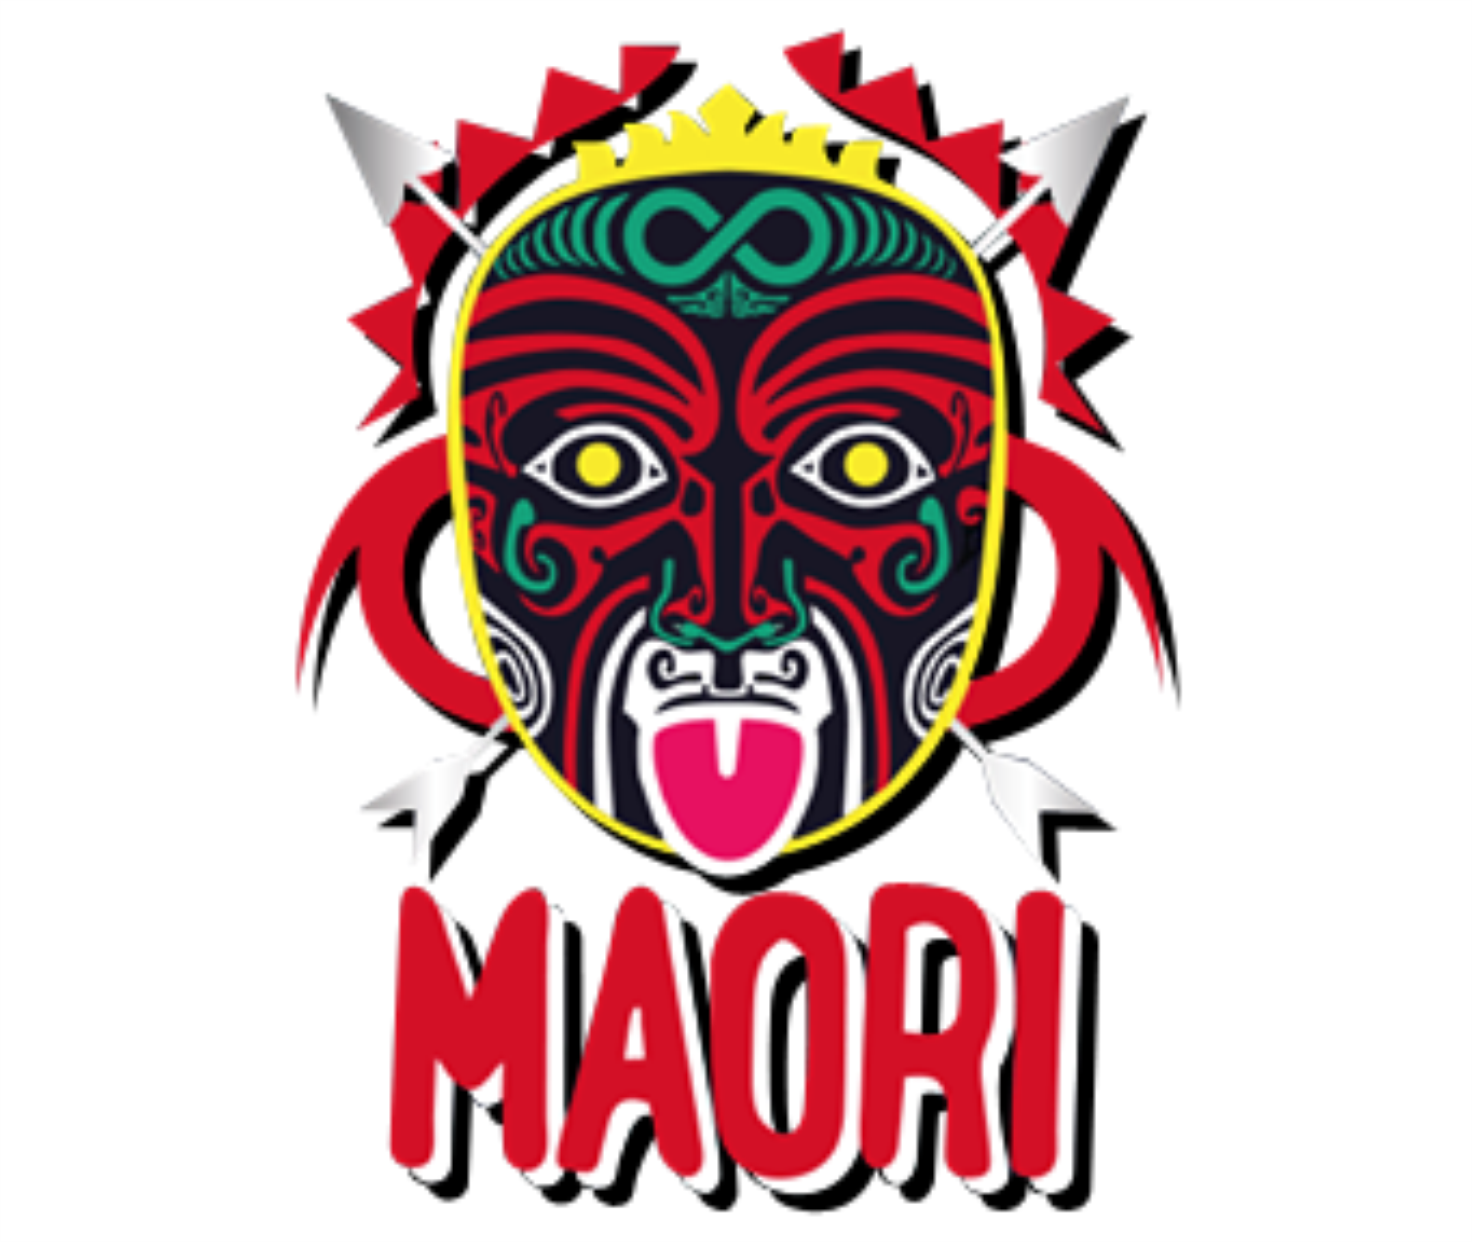 Maori by Full Moon